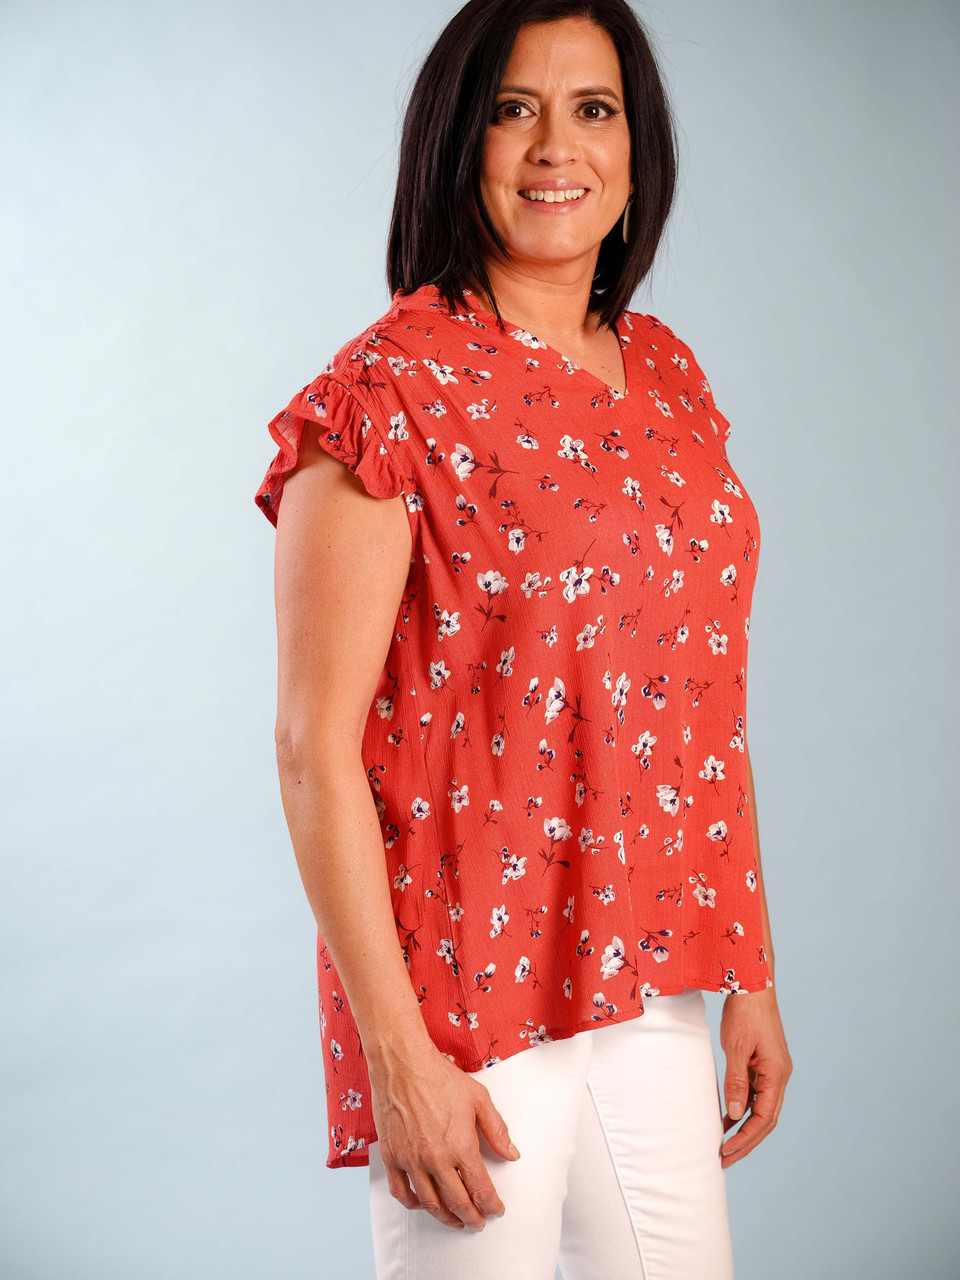 Rusty-red top with floral pattern, V-neck with delicate ruffled collar and sleeves, Slight high/low hem, Model is wearing a small.